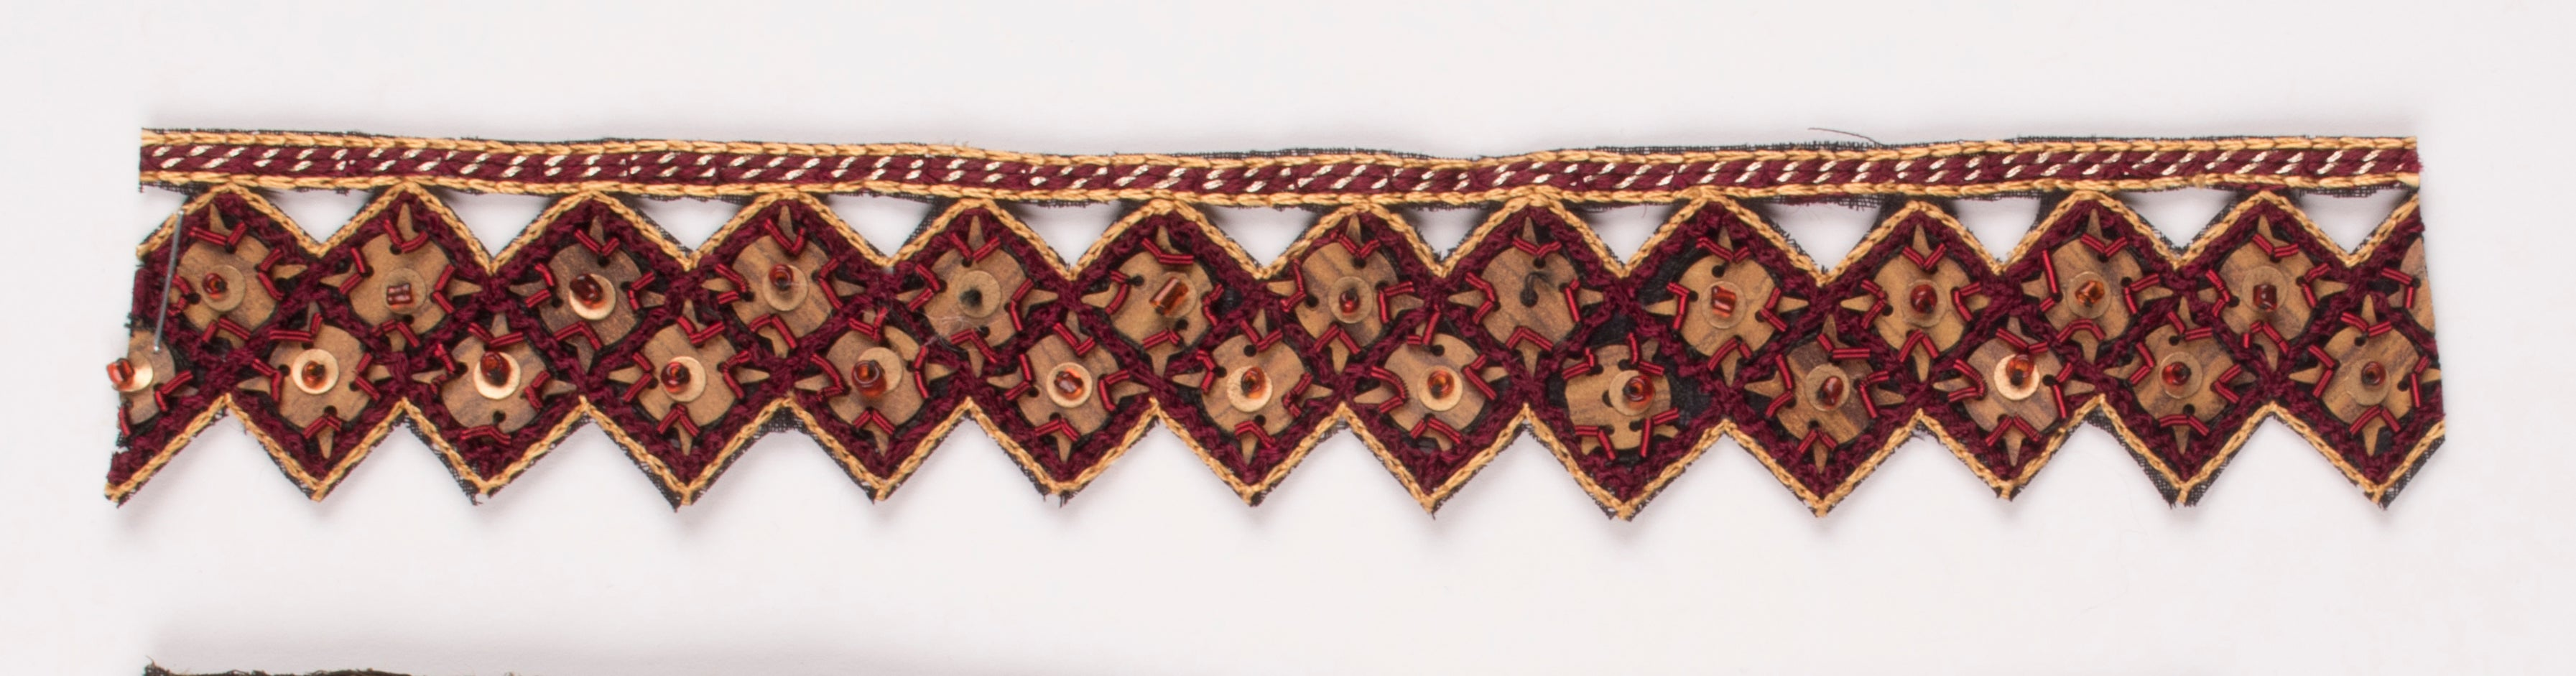 Triangular Handcrafted Indian Trim with Sequins - Target Trim